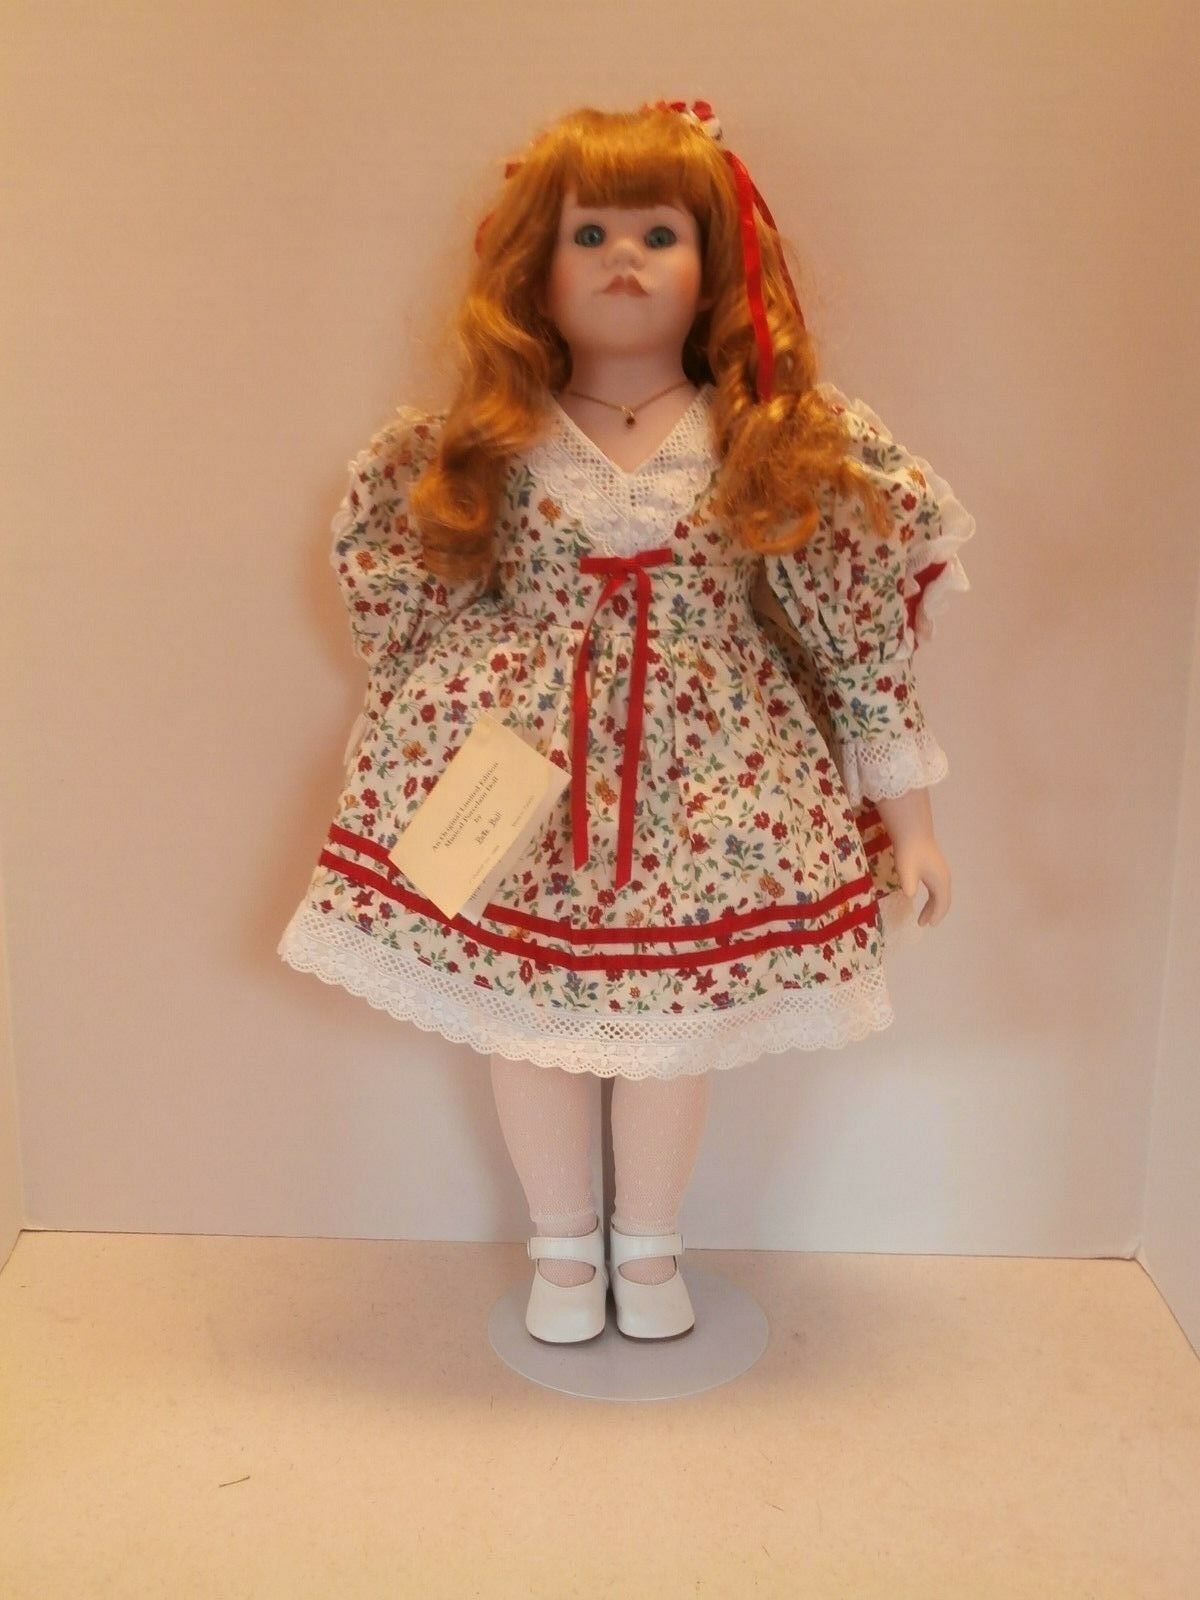 VINTAGE LIMITED EDITION 23  GOEBEL DOLL  BY BETTE BALL ORIGINAL 1989 ALL AMERICA